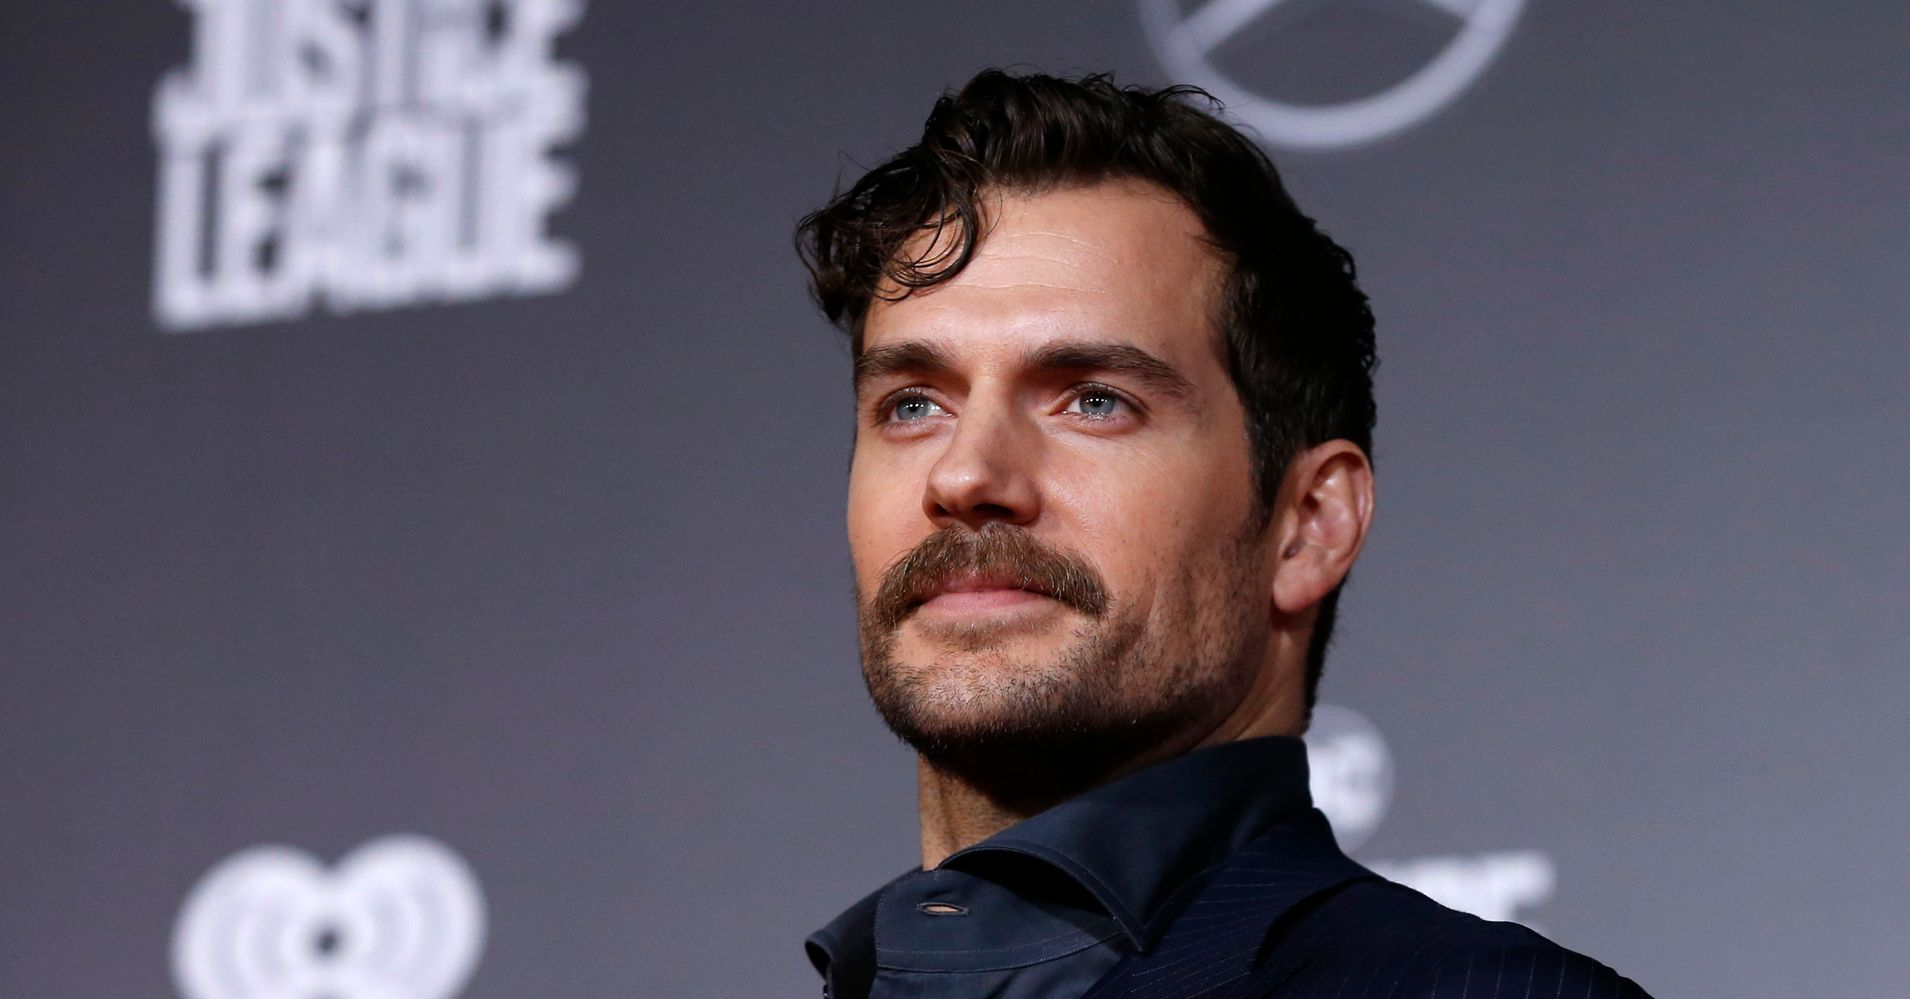 Henry Cavill's Me Too Comments Spark Strong Reactions On Twitter